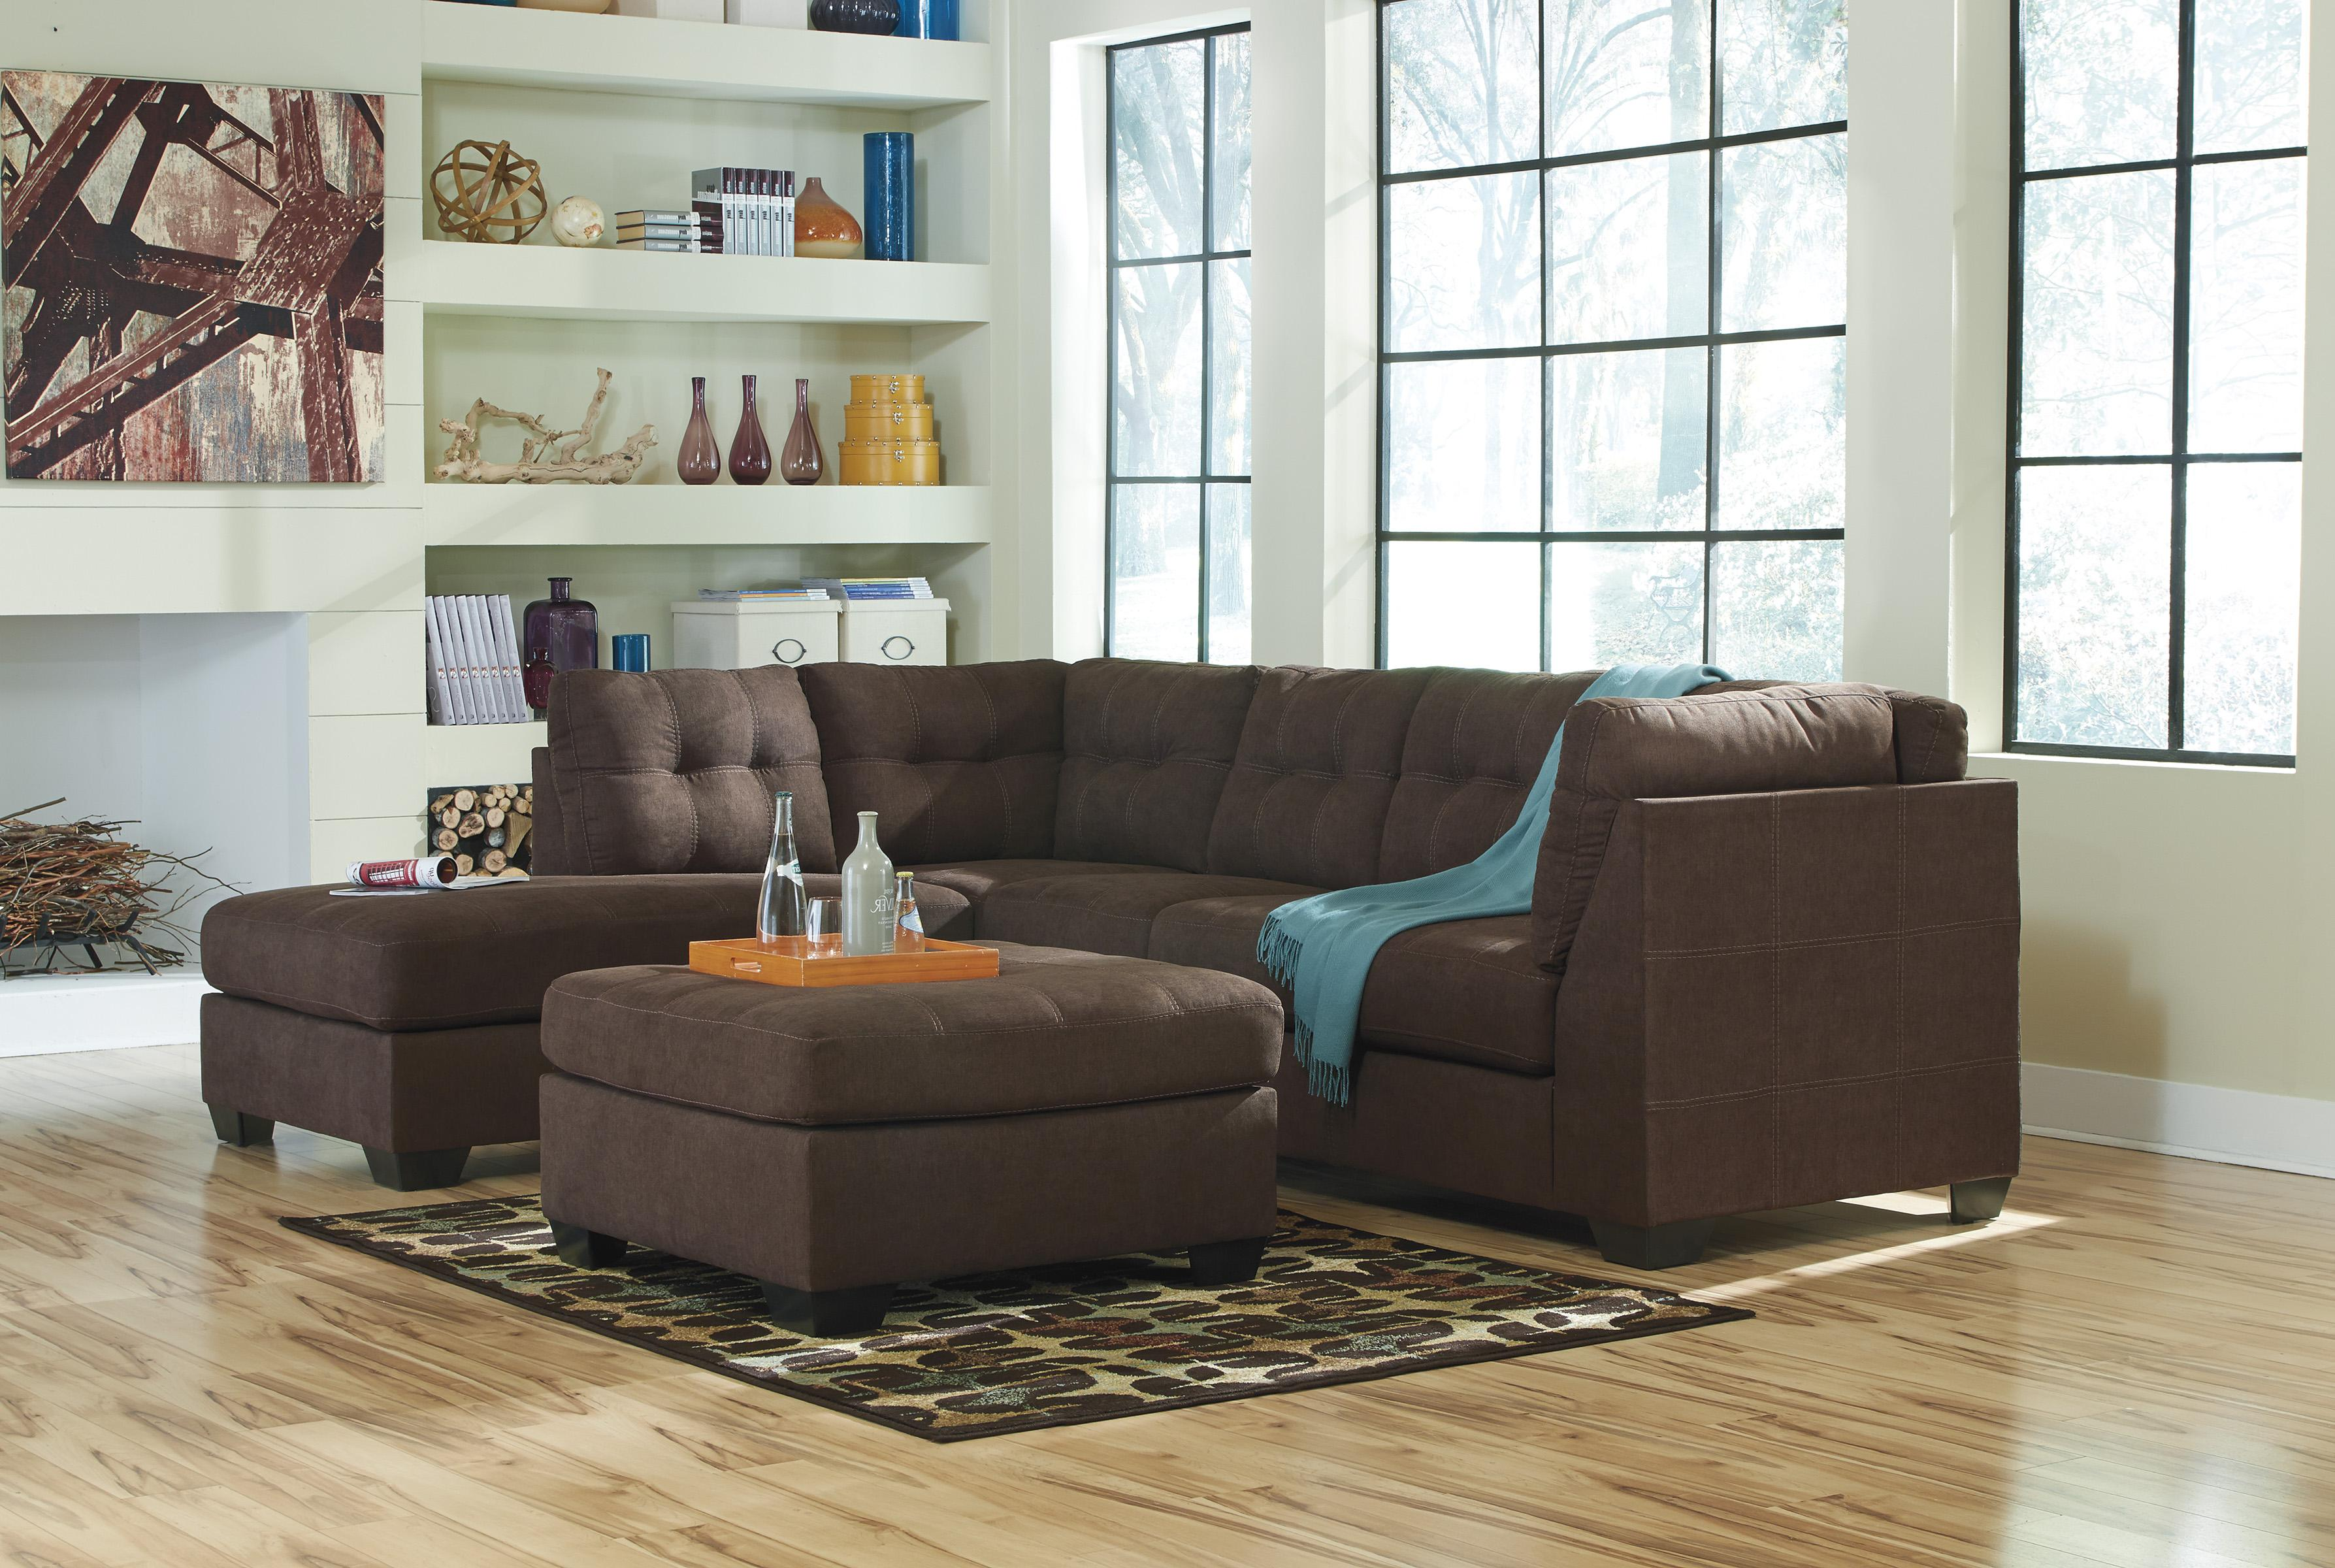 Benchcraft maier walnut 2 piece sectional w sleeper for Andrea 2 piece sleeper chaise